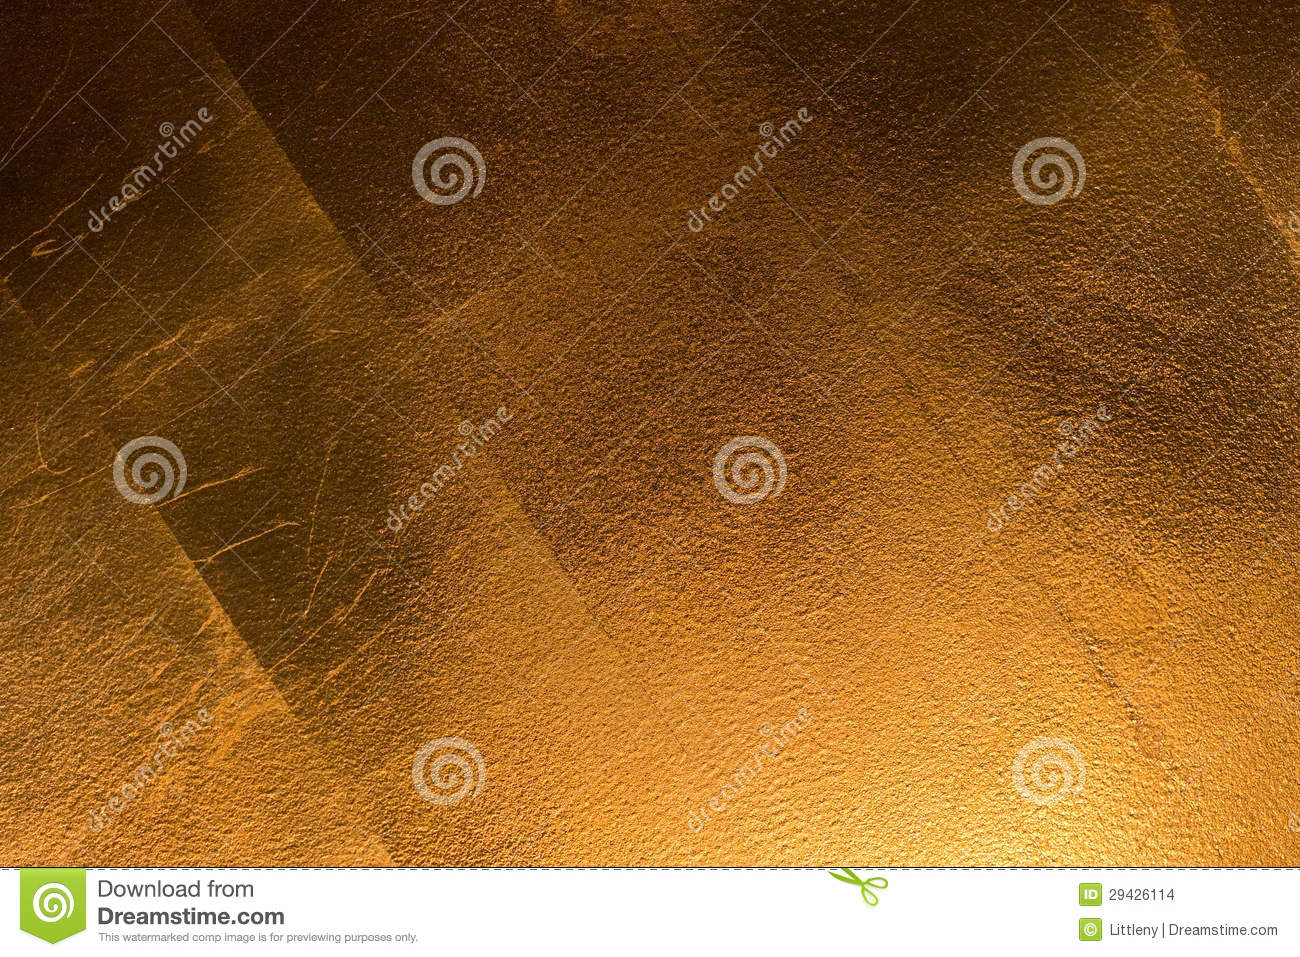 Weinlese Goldtapete Stock Photos - Download 16 Images